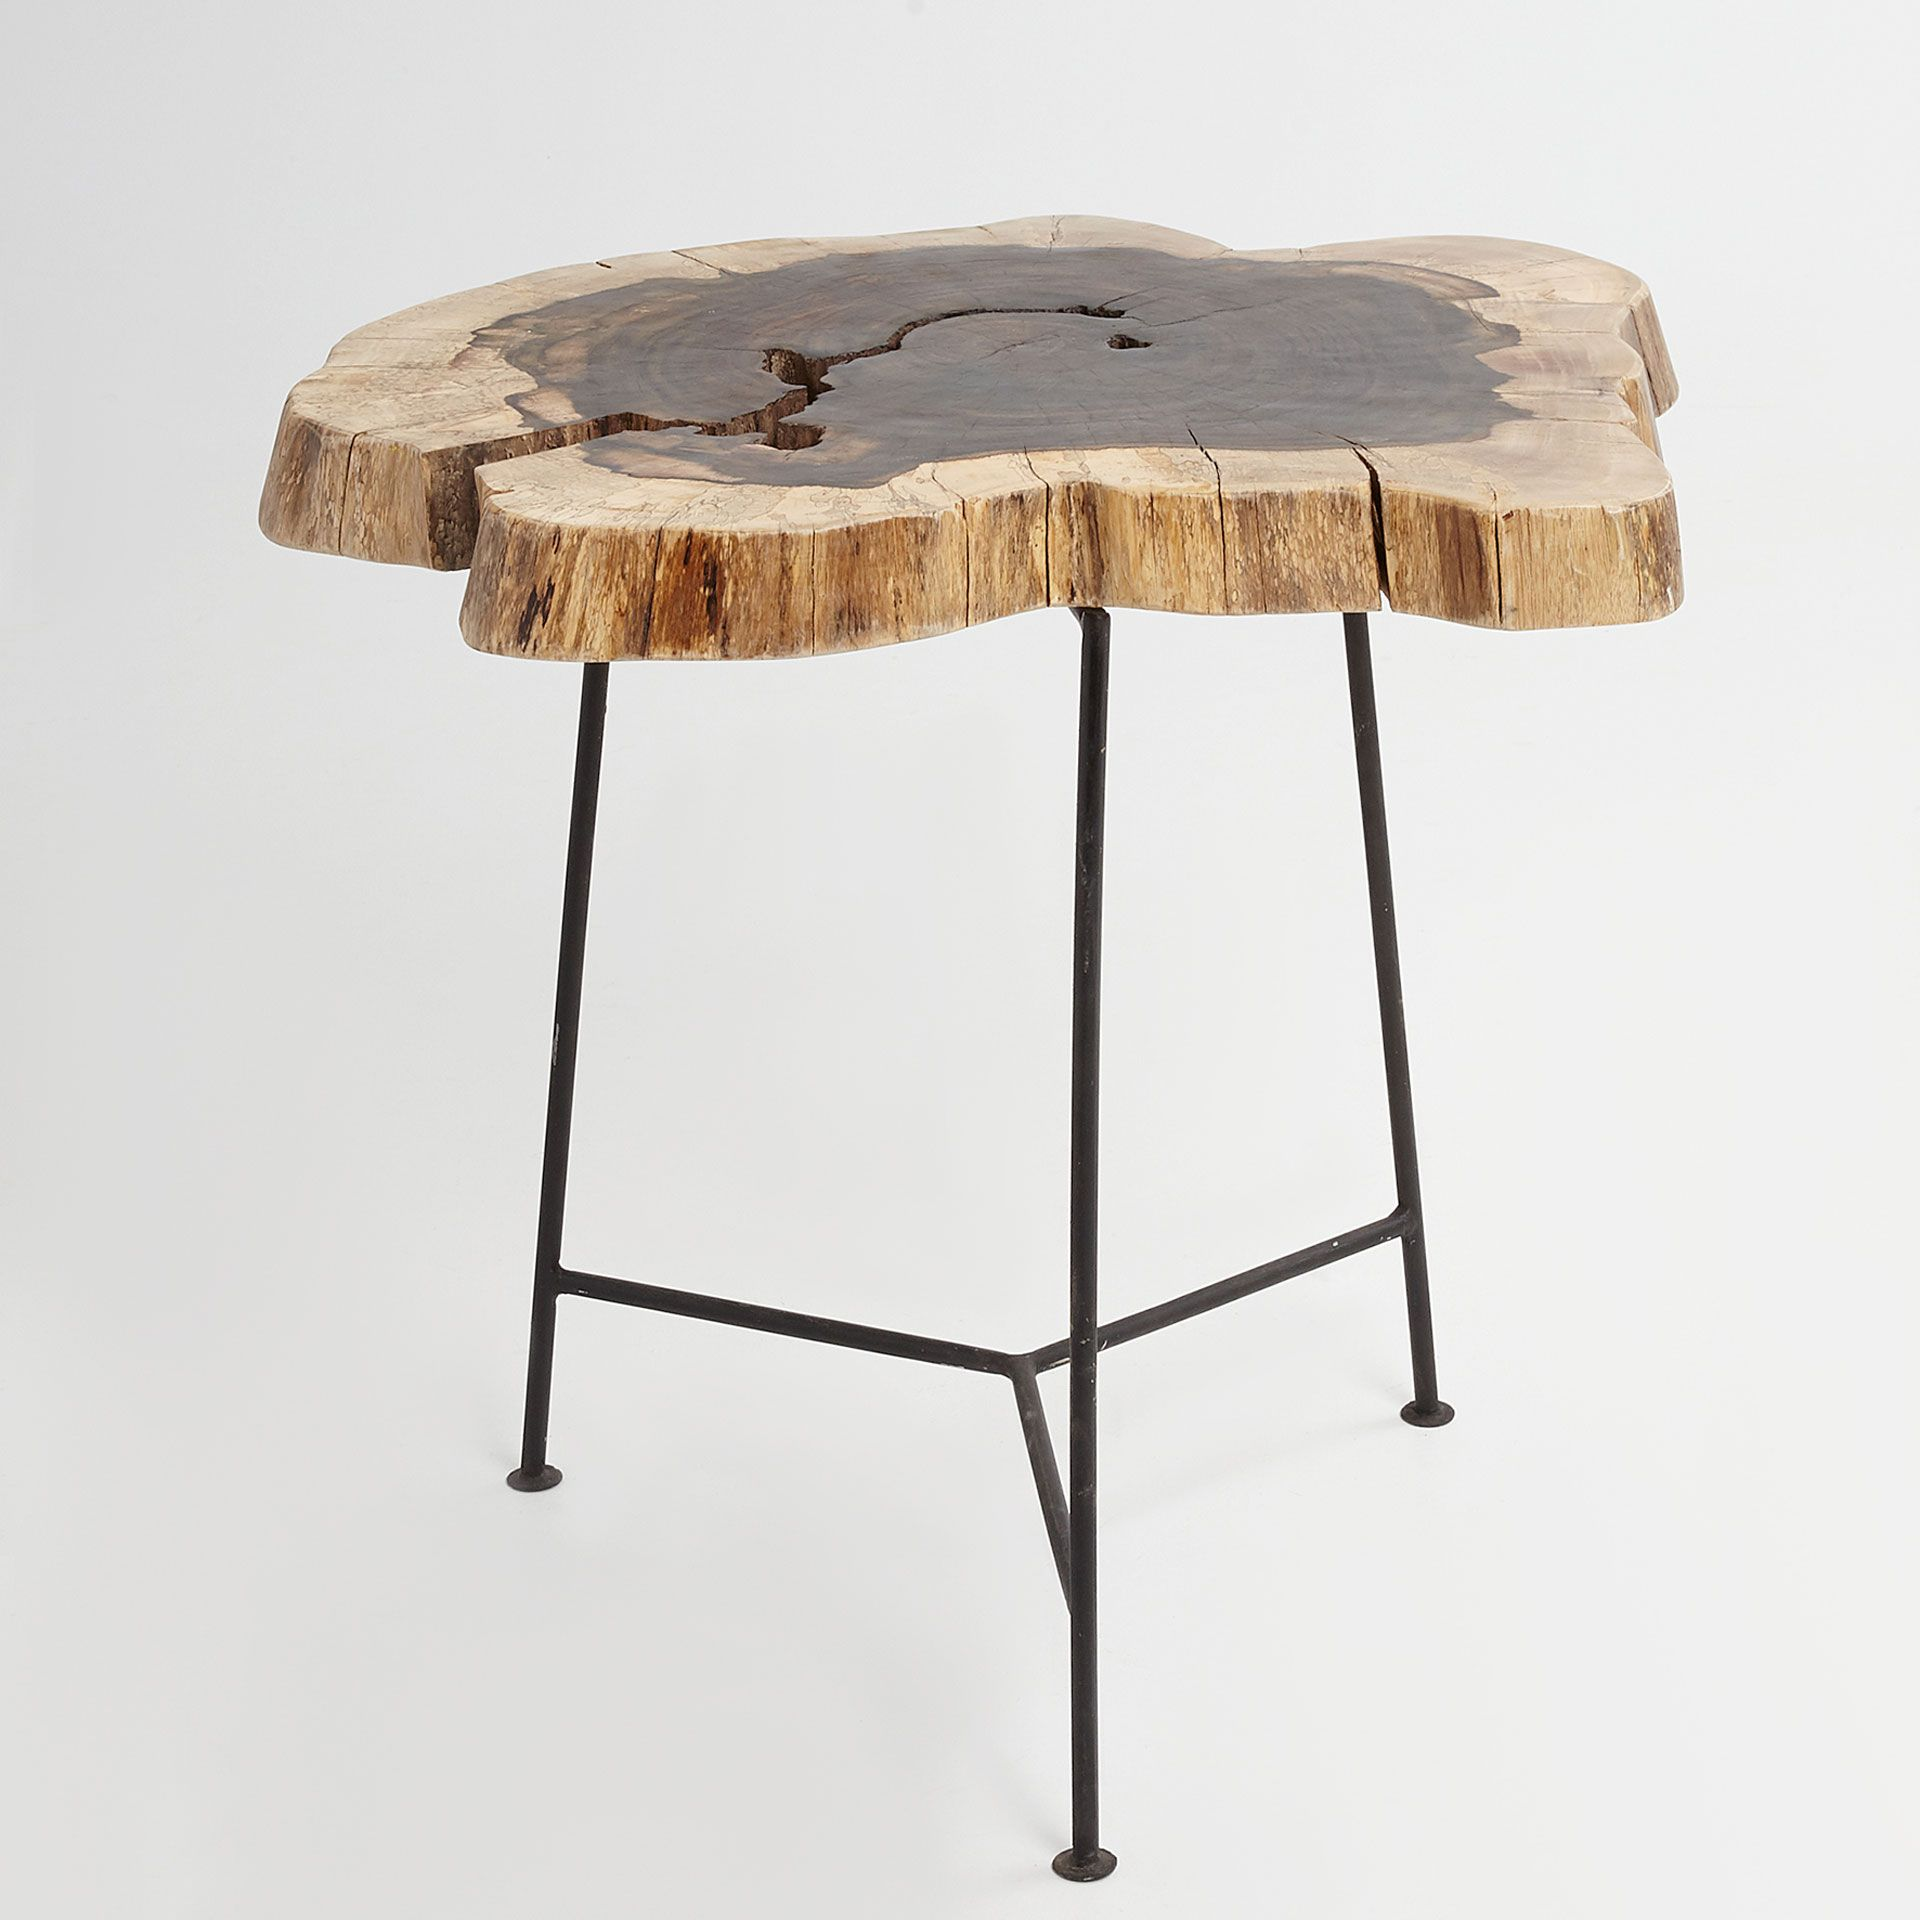 the product round bedside table with tree trunk top neelan accent counter height pub knotty pine desk diy rustic coffee oval fall tablecloths acrylic pedestal outdoor storage